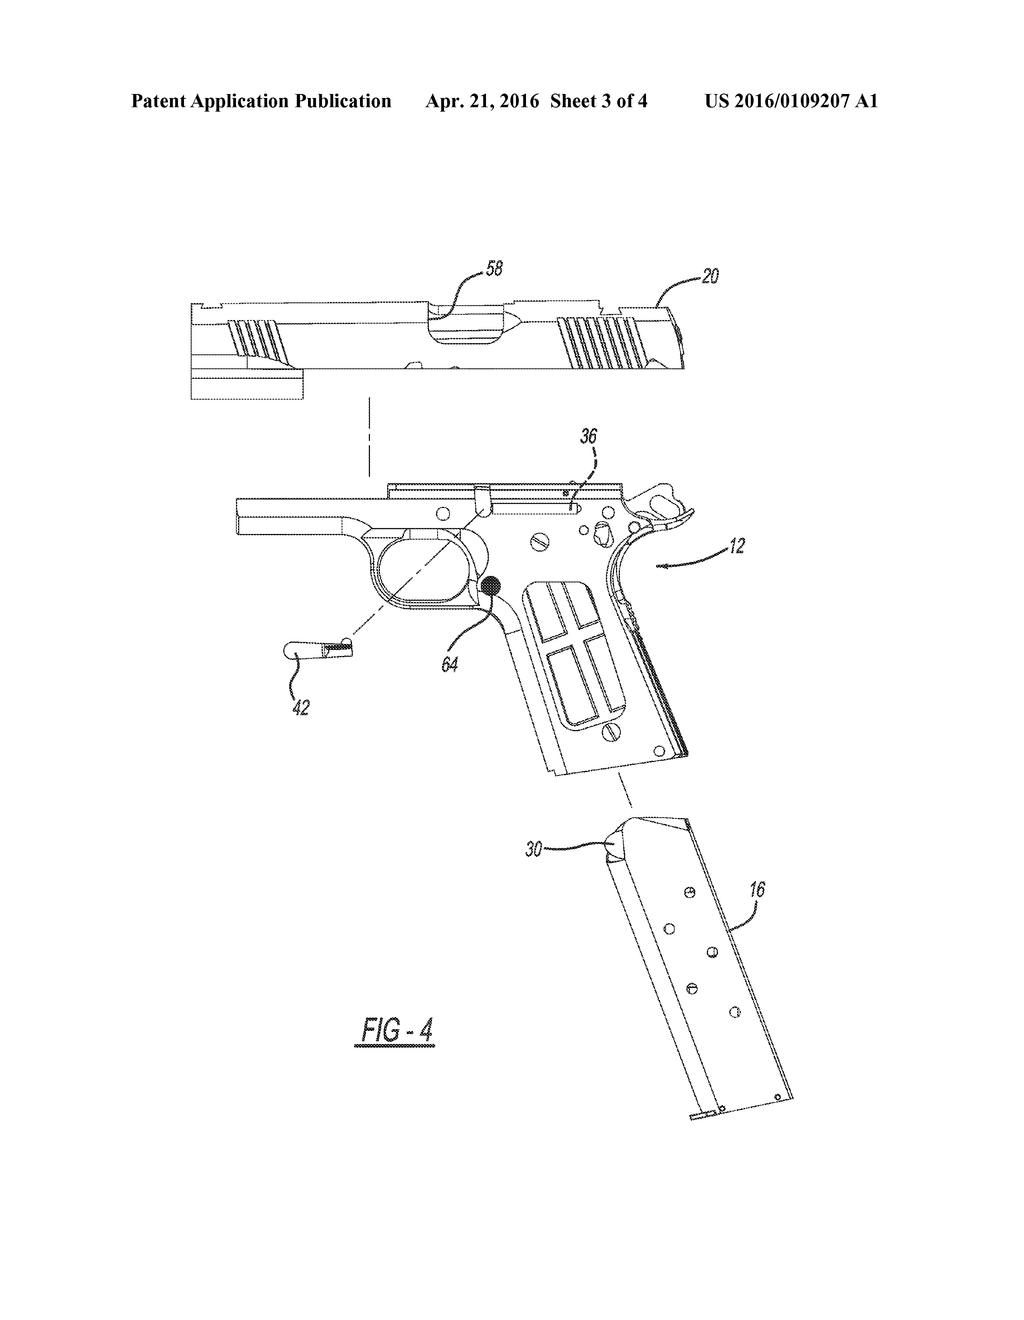 hybrid left handed 1911 pistol diagram schematic and image 04 rh patentsencyclopedia com 1911 pistol diagram of parts Exploded View of 1911 Pistol